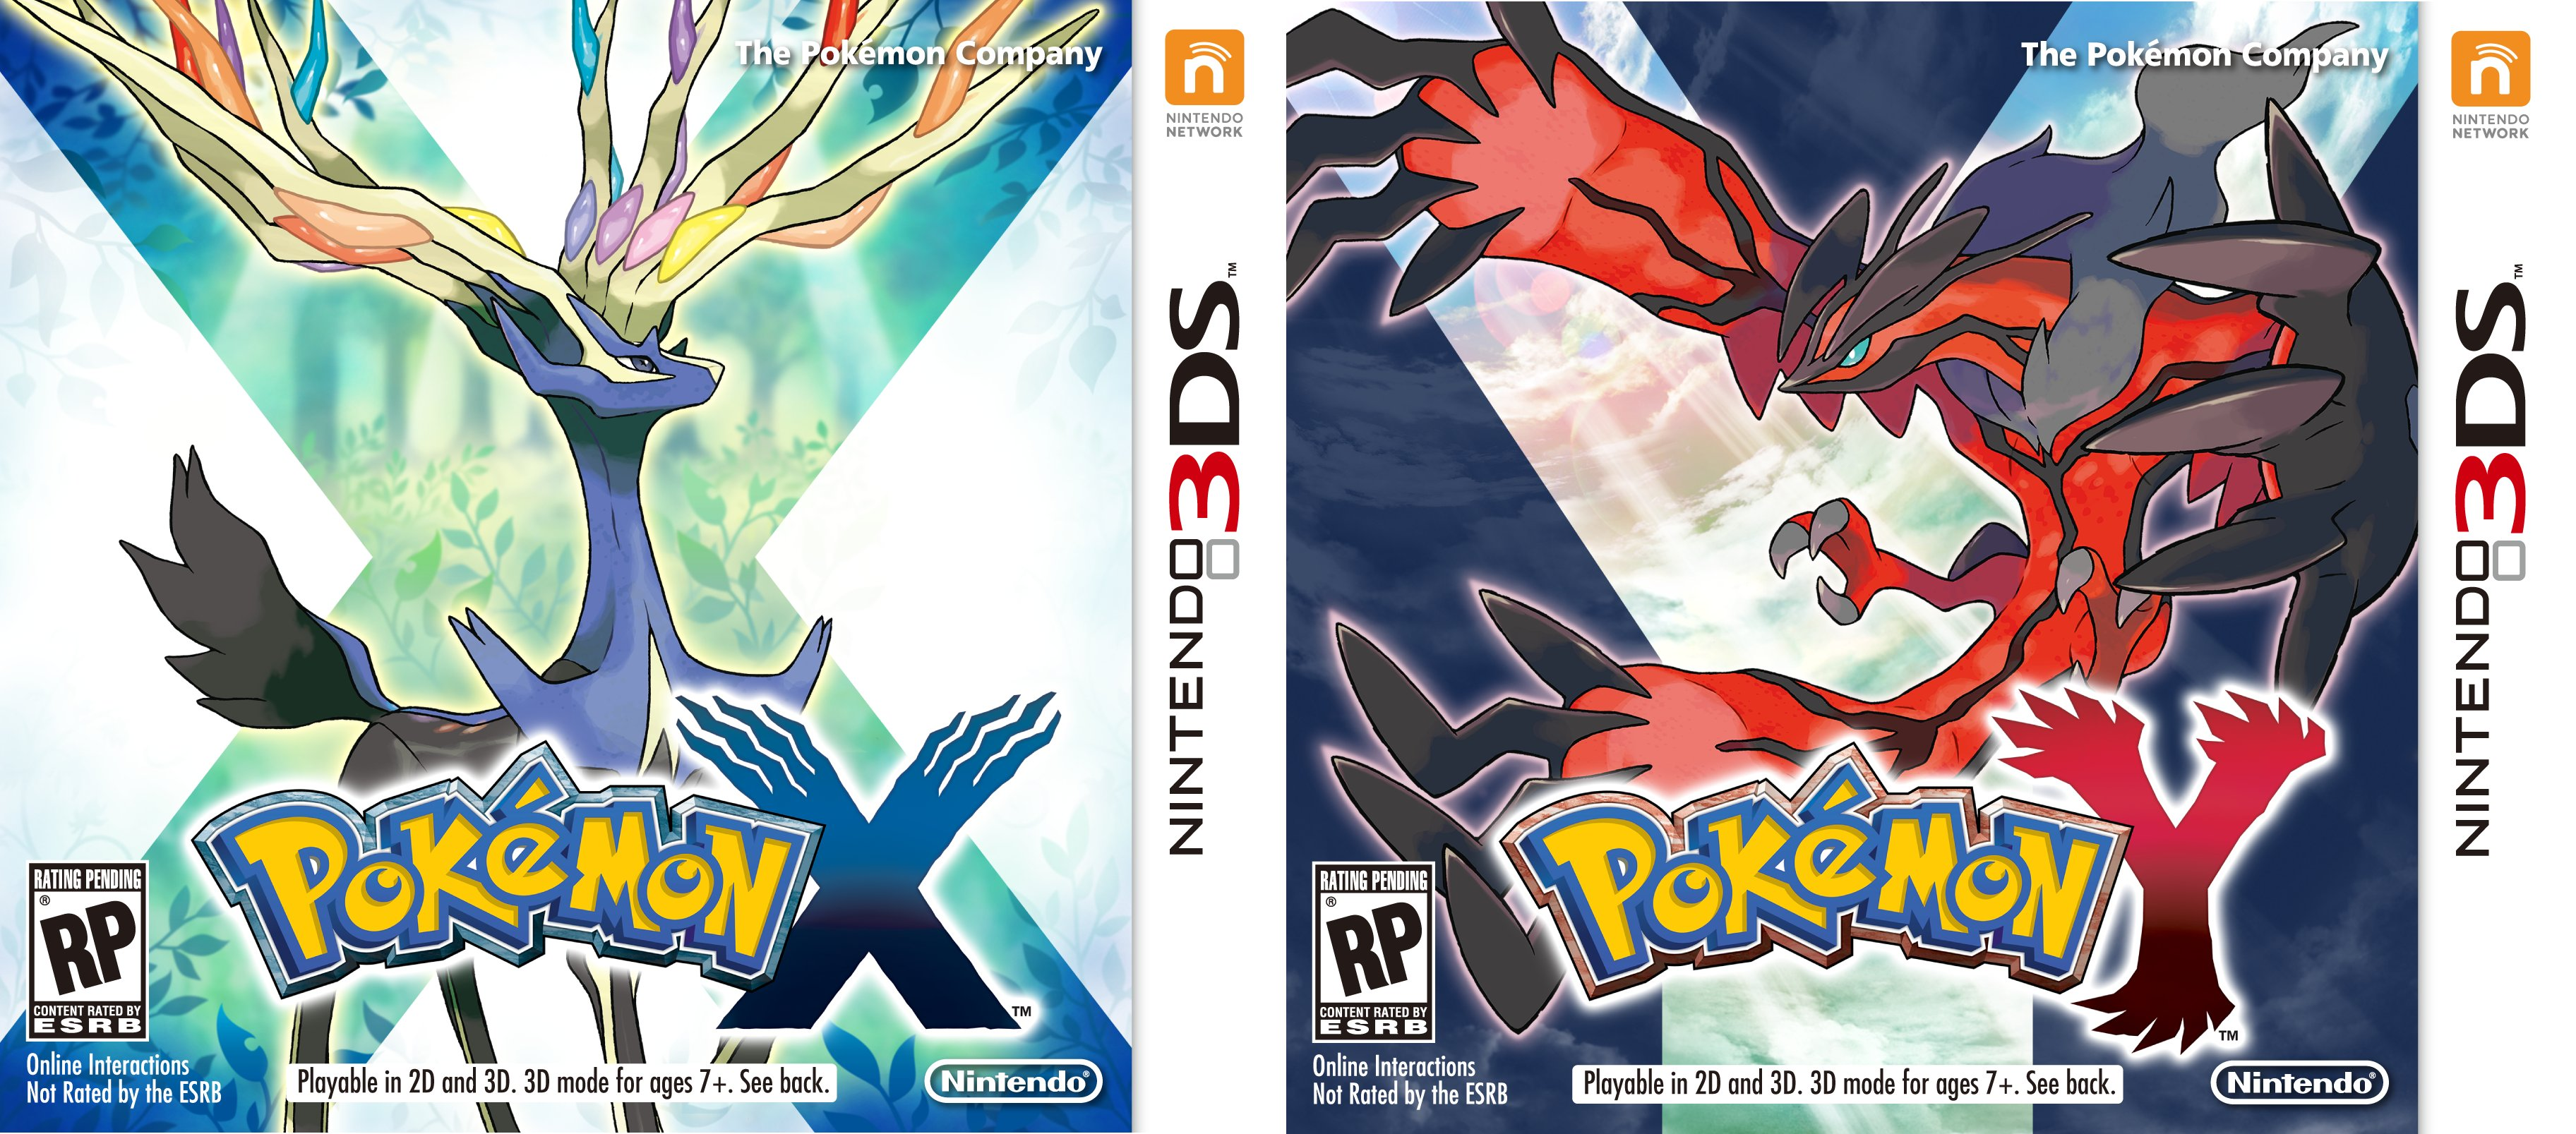 Nintendo 3ds Pokemon Games : Pokémon and y video games released for nintendo ds